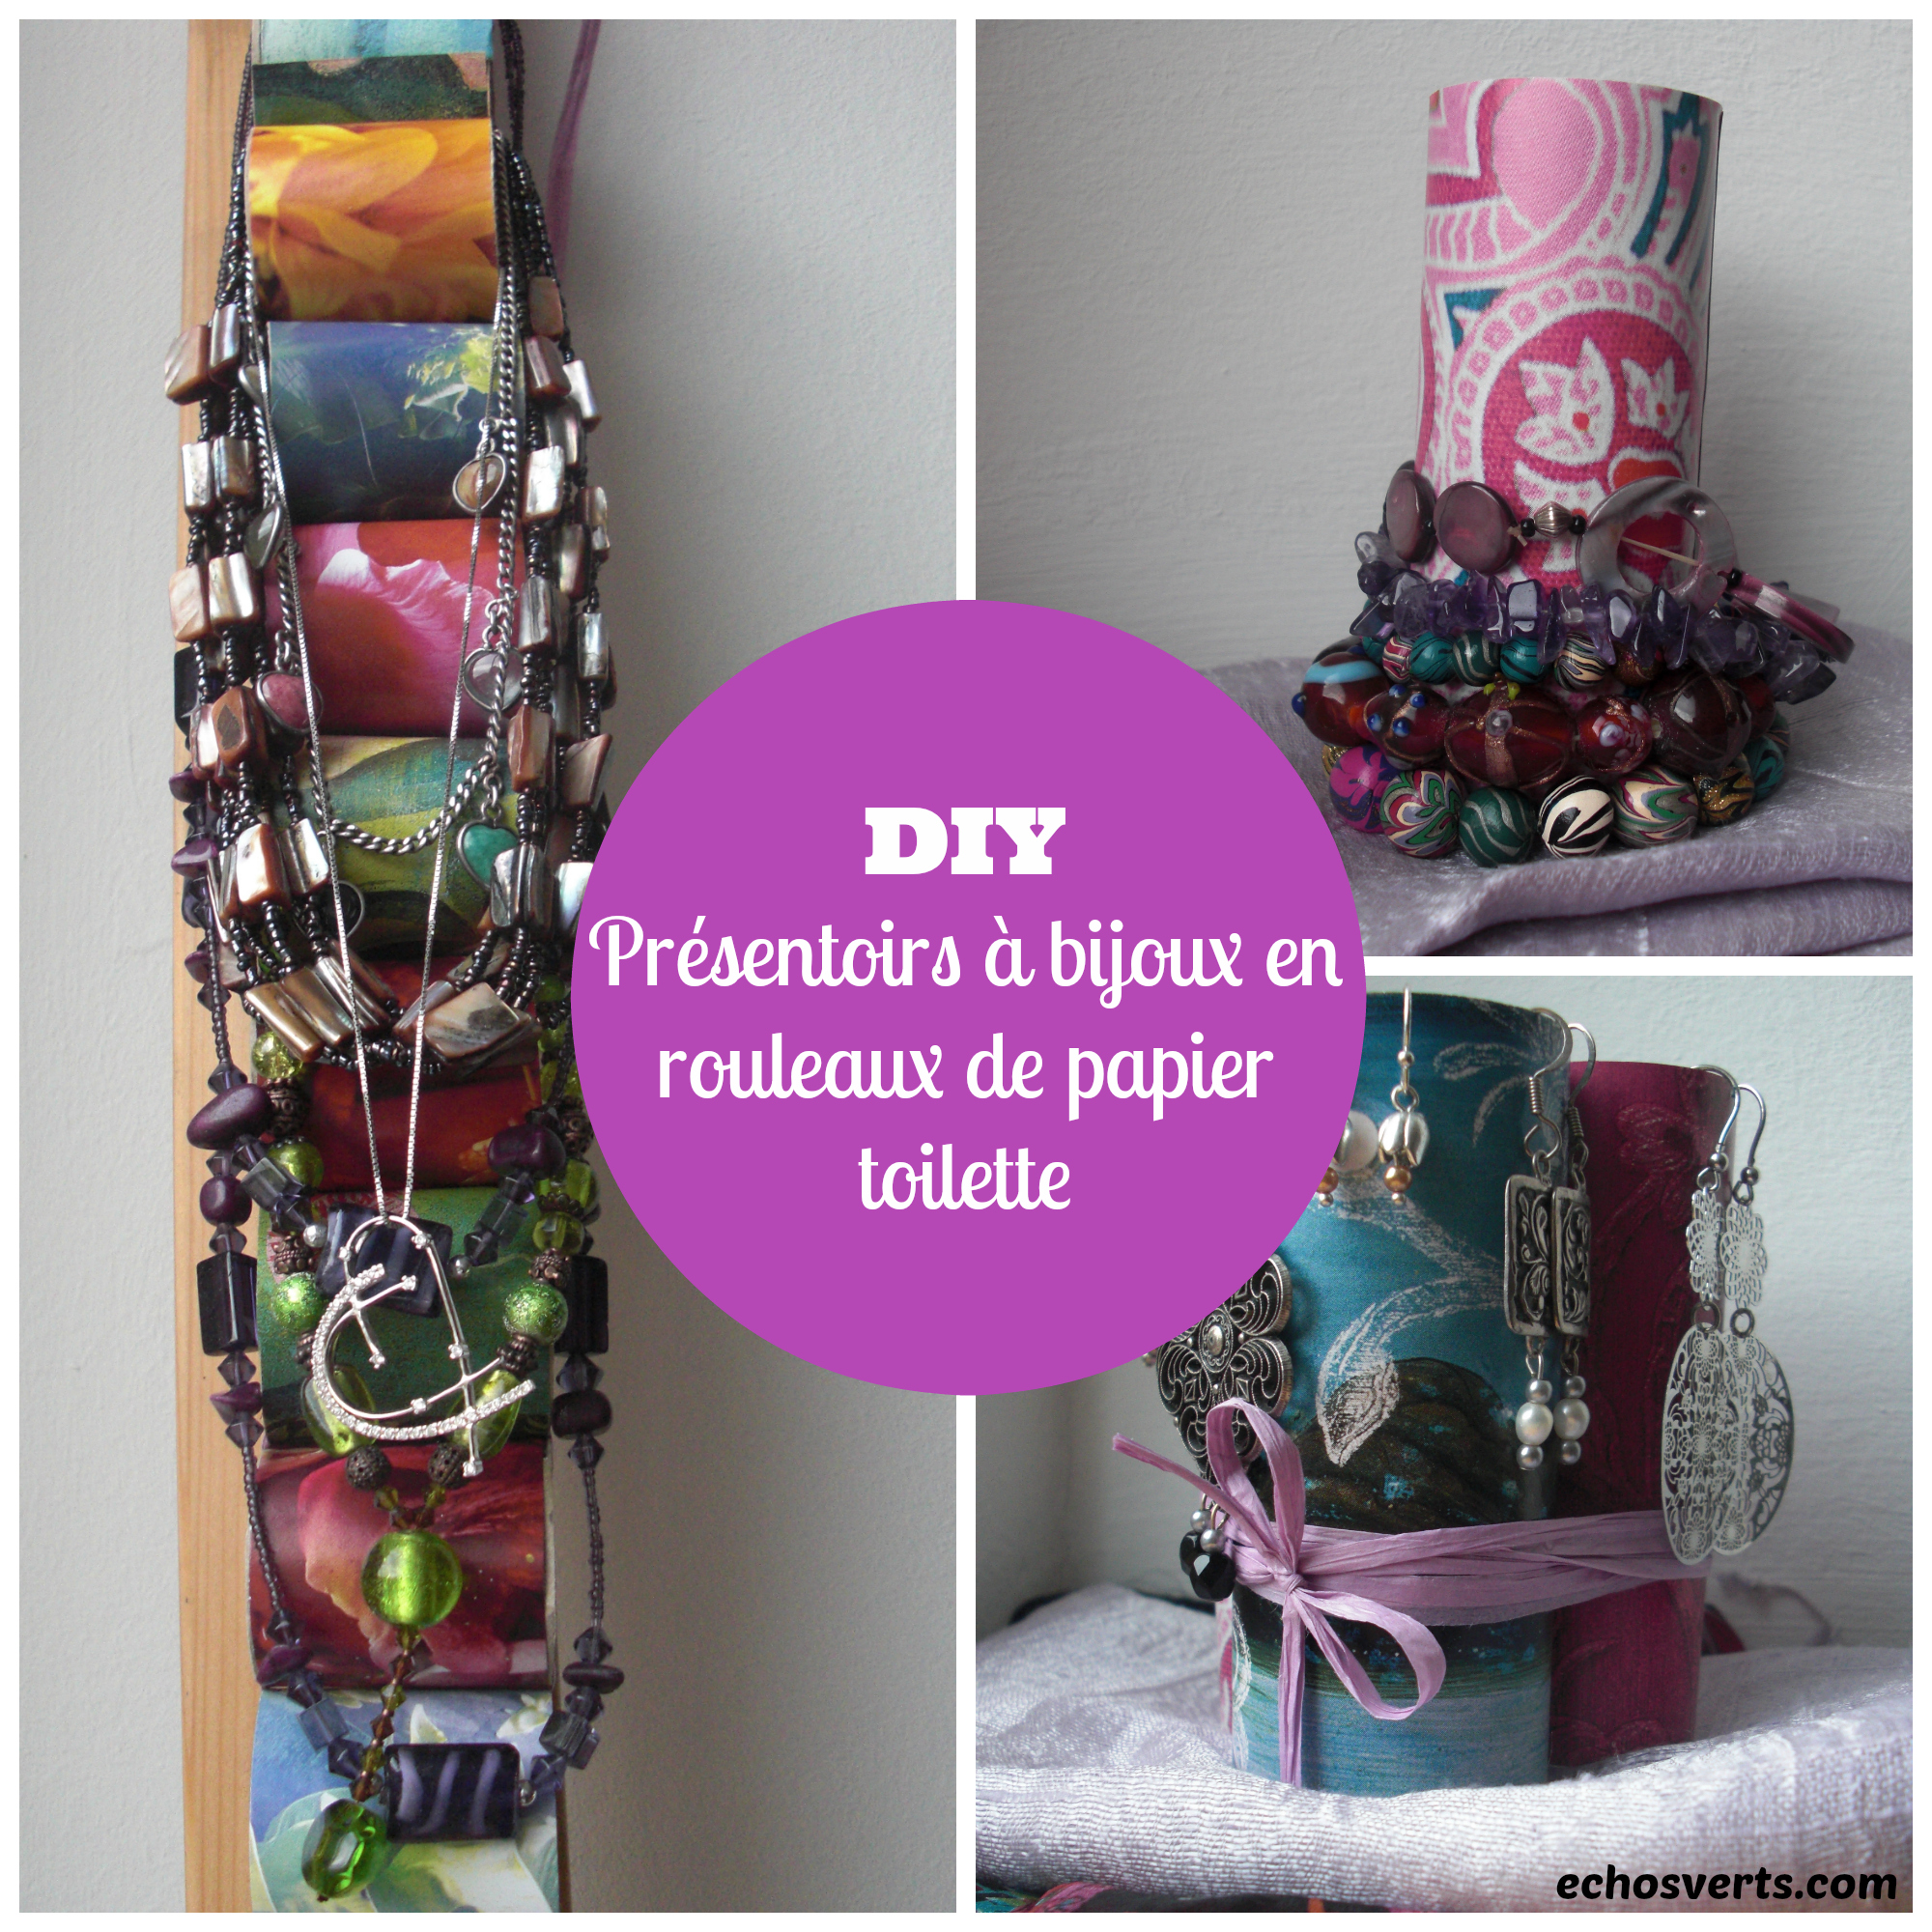 diy pr sentoirs bijoux en rouleaux de papier toilette. Black Bedroom Furniture Sets. Home Design Ideas